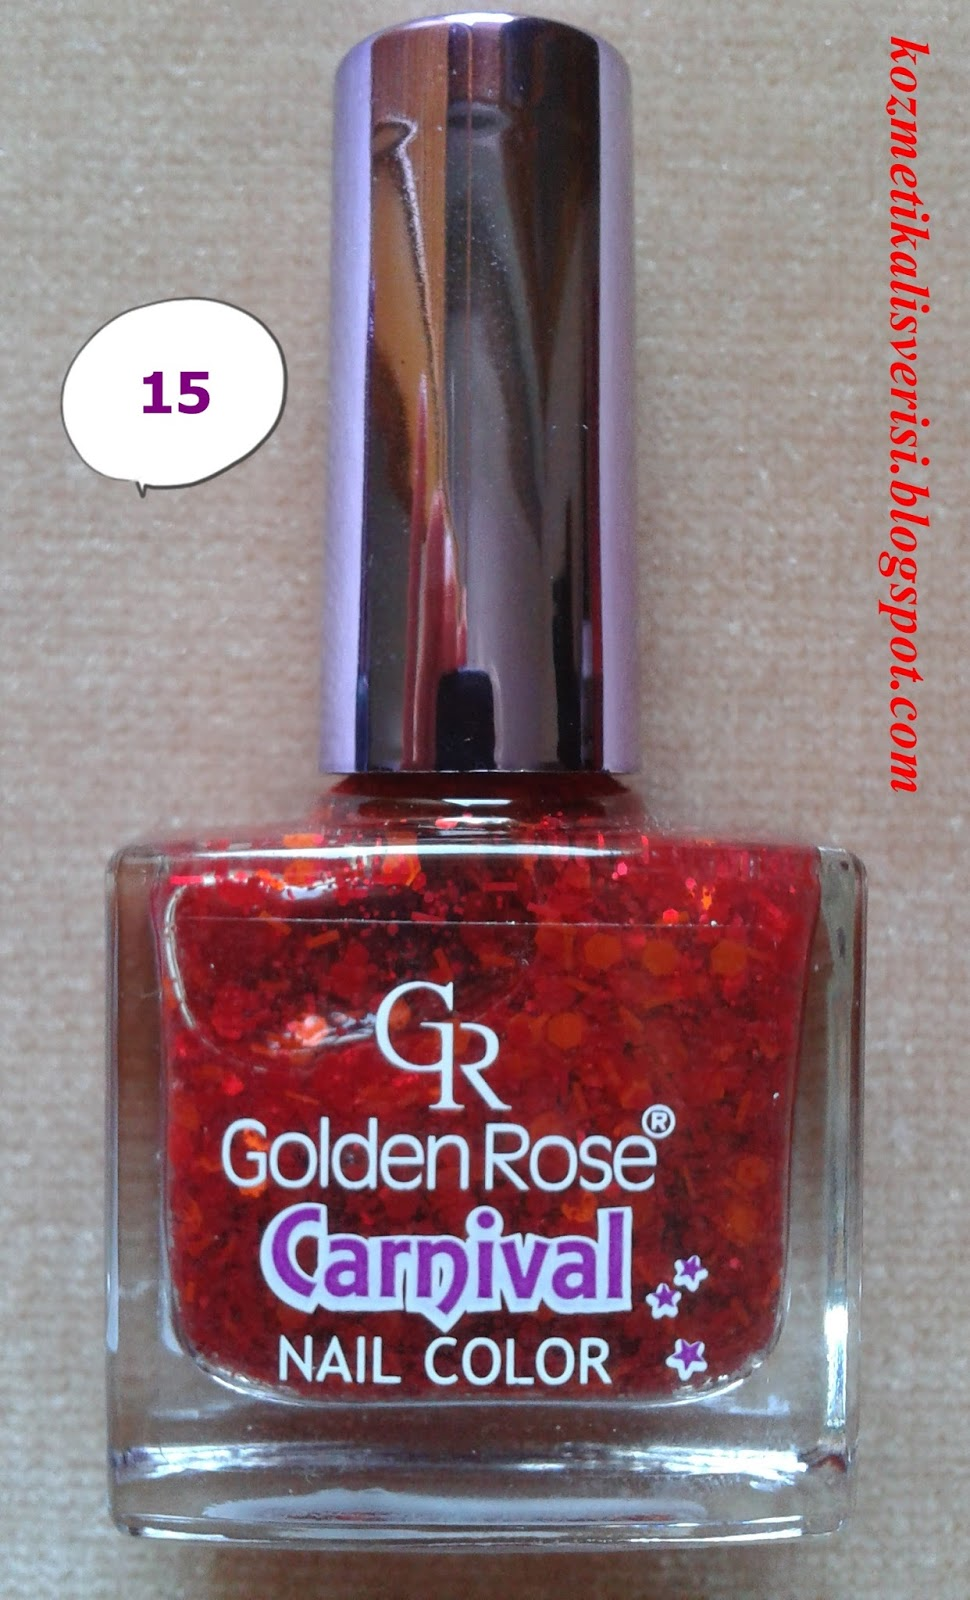 Golden Rose Carnival Nail Color 15